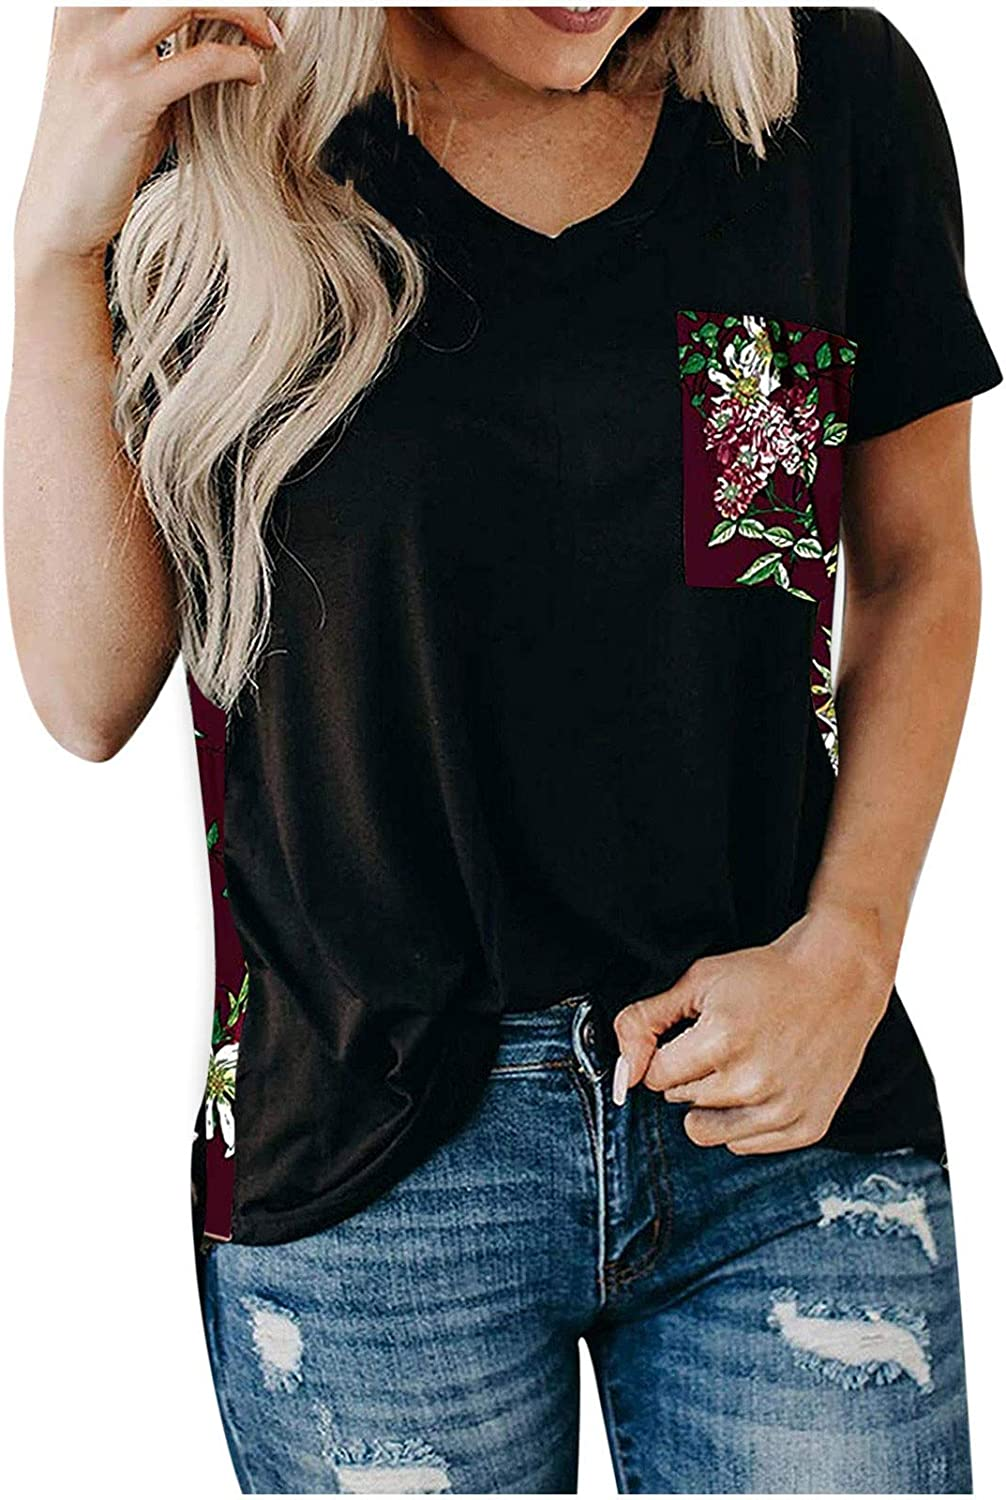 Aukbays T-Shirts for Women Womens Short Sleeve O Neck Pachwork Print T Shirts Loose Casual Summer Tops Tees with Pocket